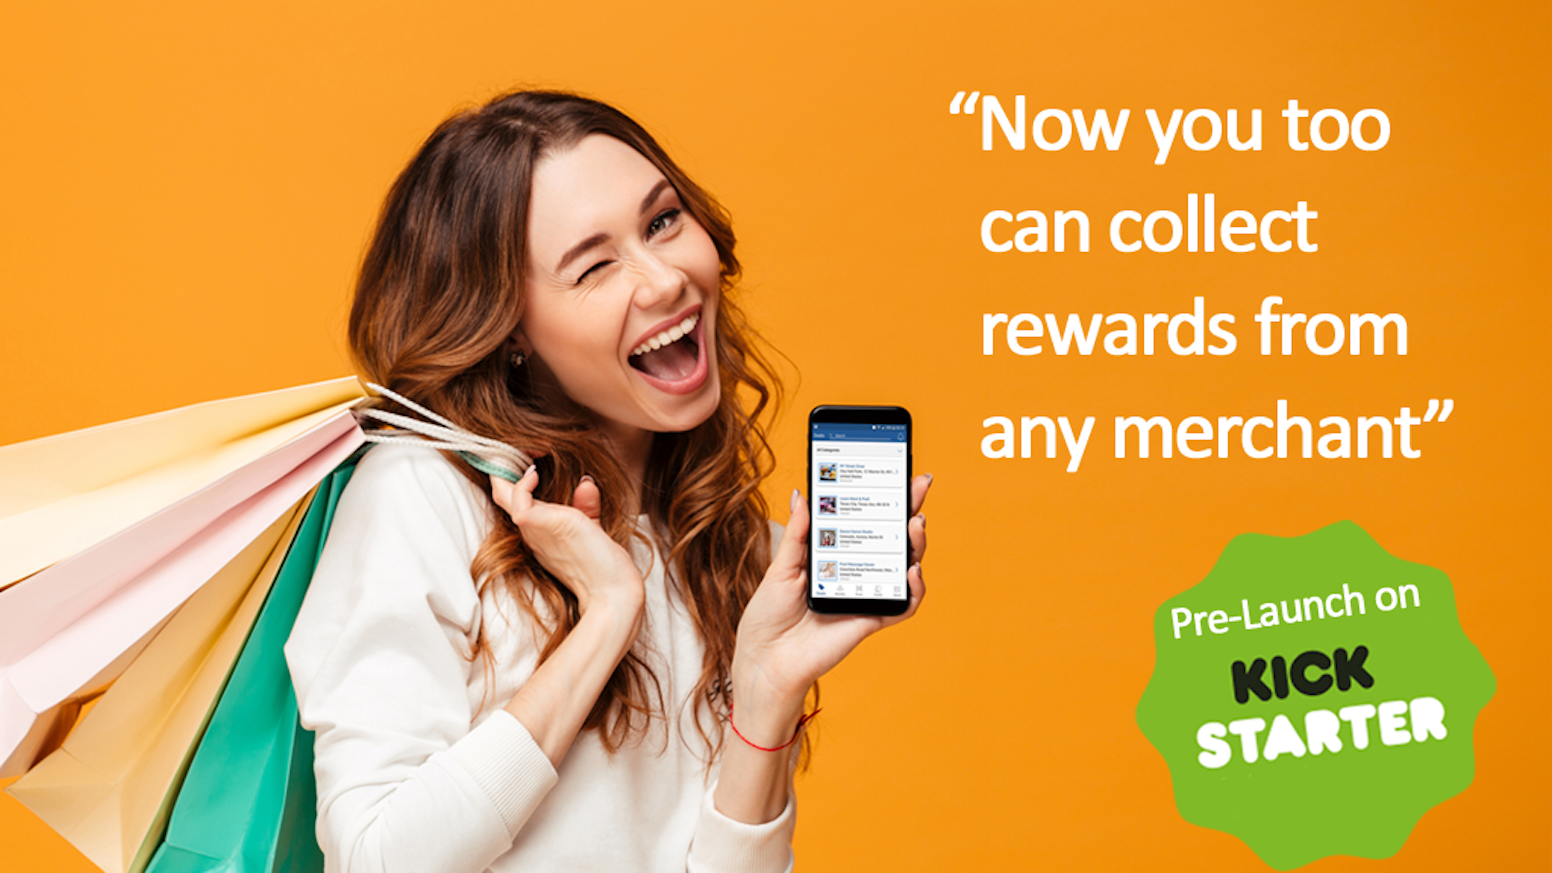 Finally an app that rewards you for your daily purchase. Collect rewards from nearby merchants with location based searches. Be part of the next Retail Revolution that is rewarding for both users and merchants.